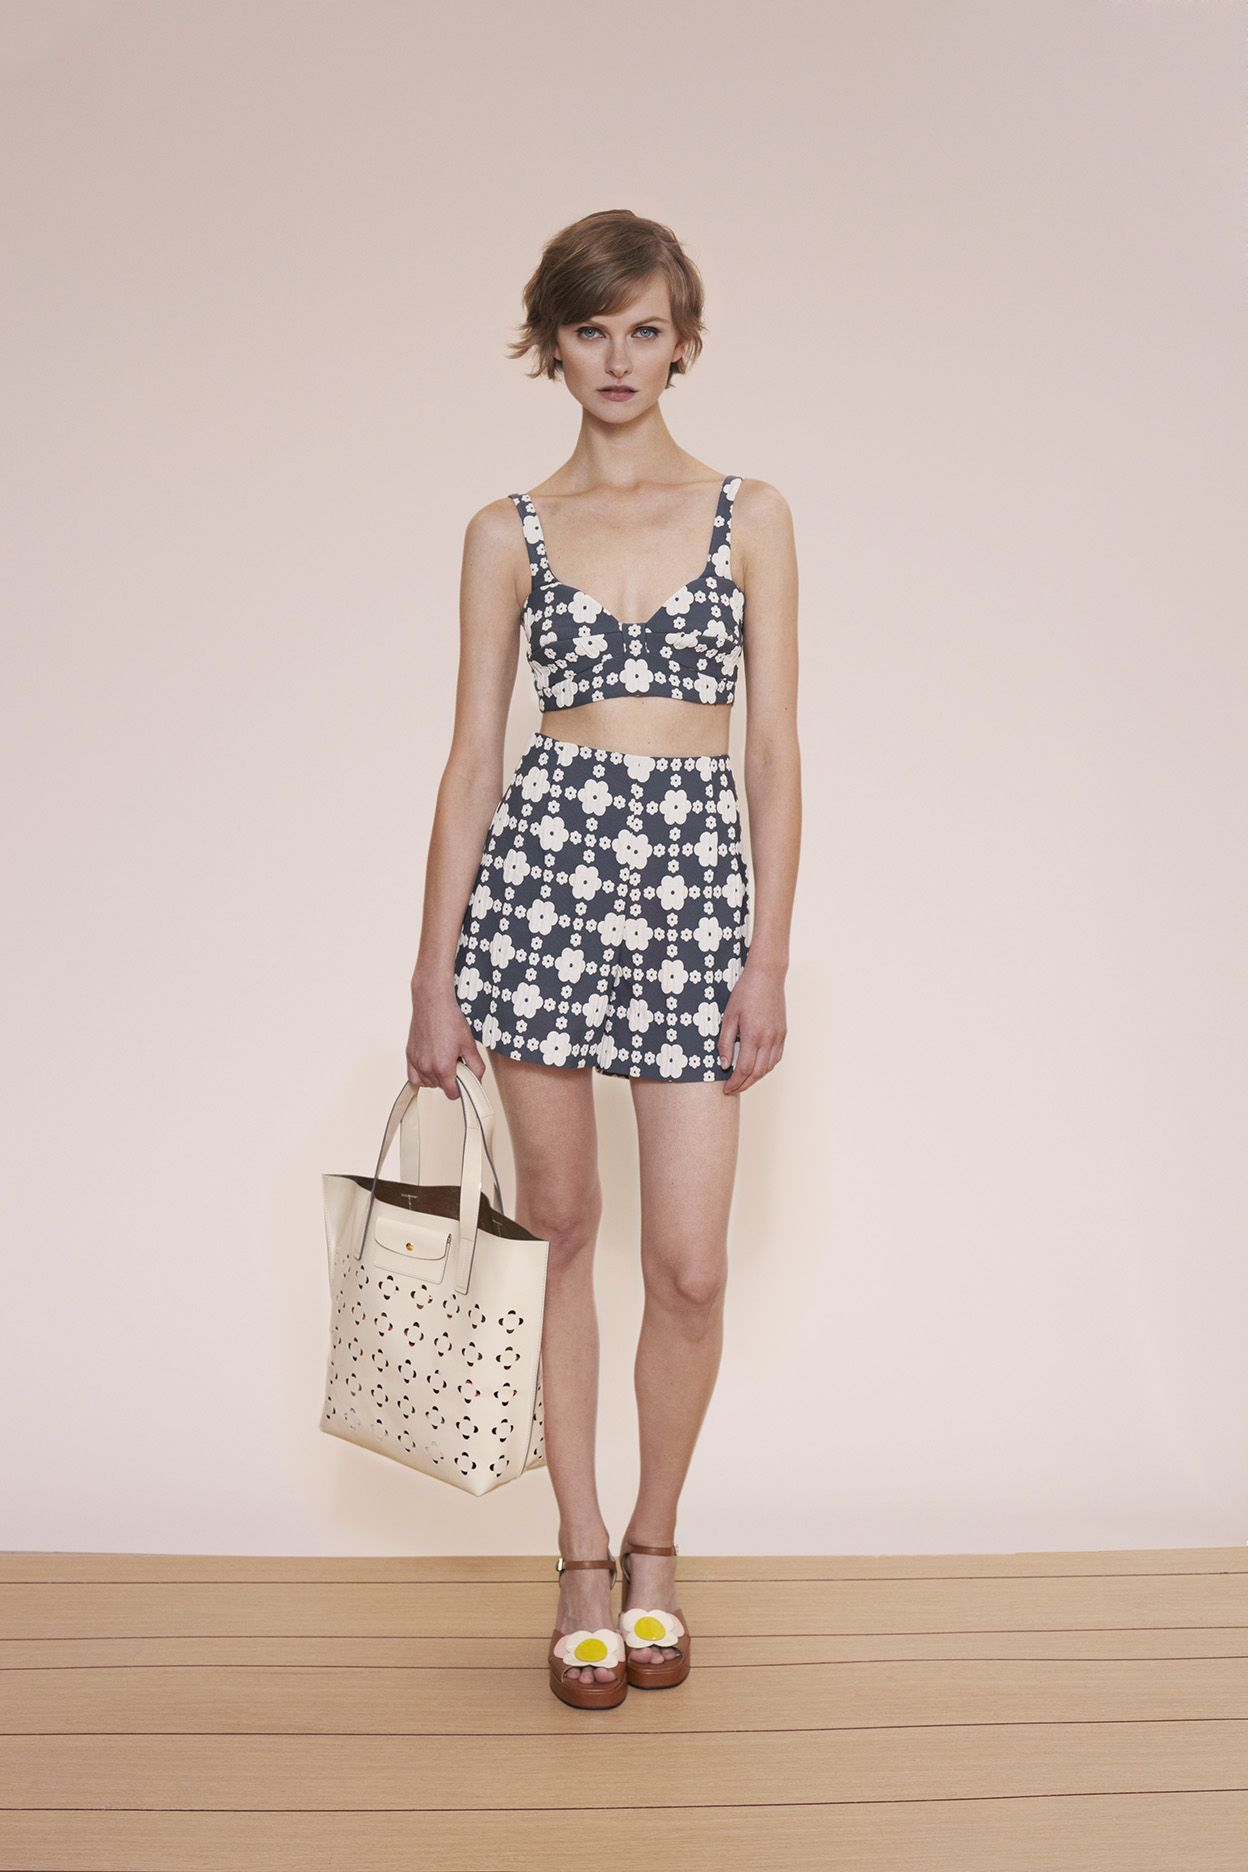 Orla Kiely spring 2015 lookbook #skirt